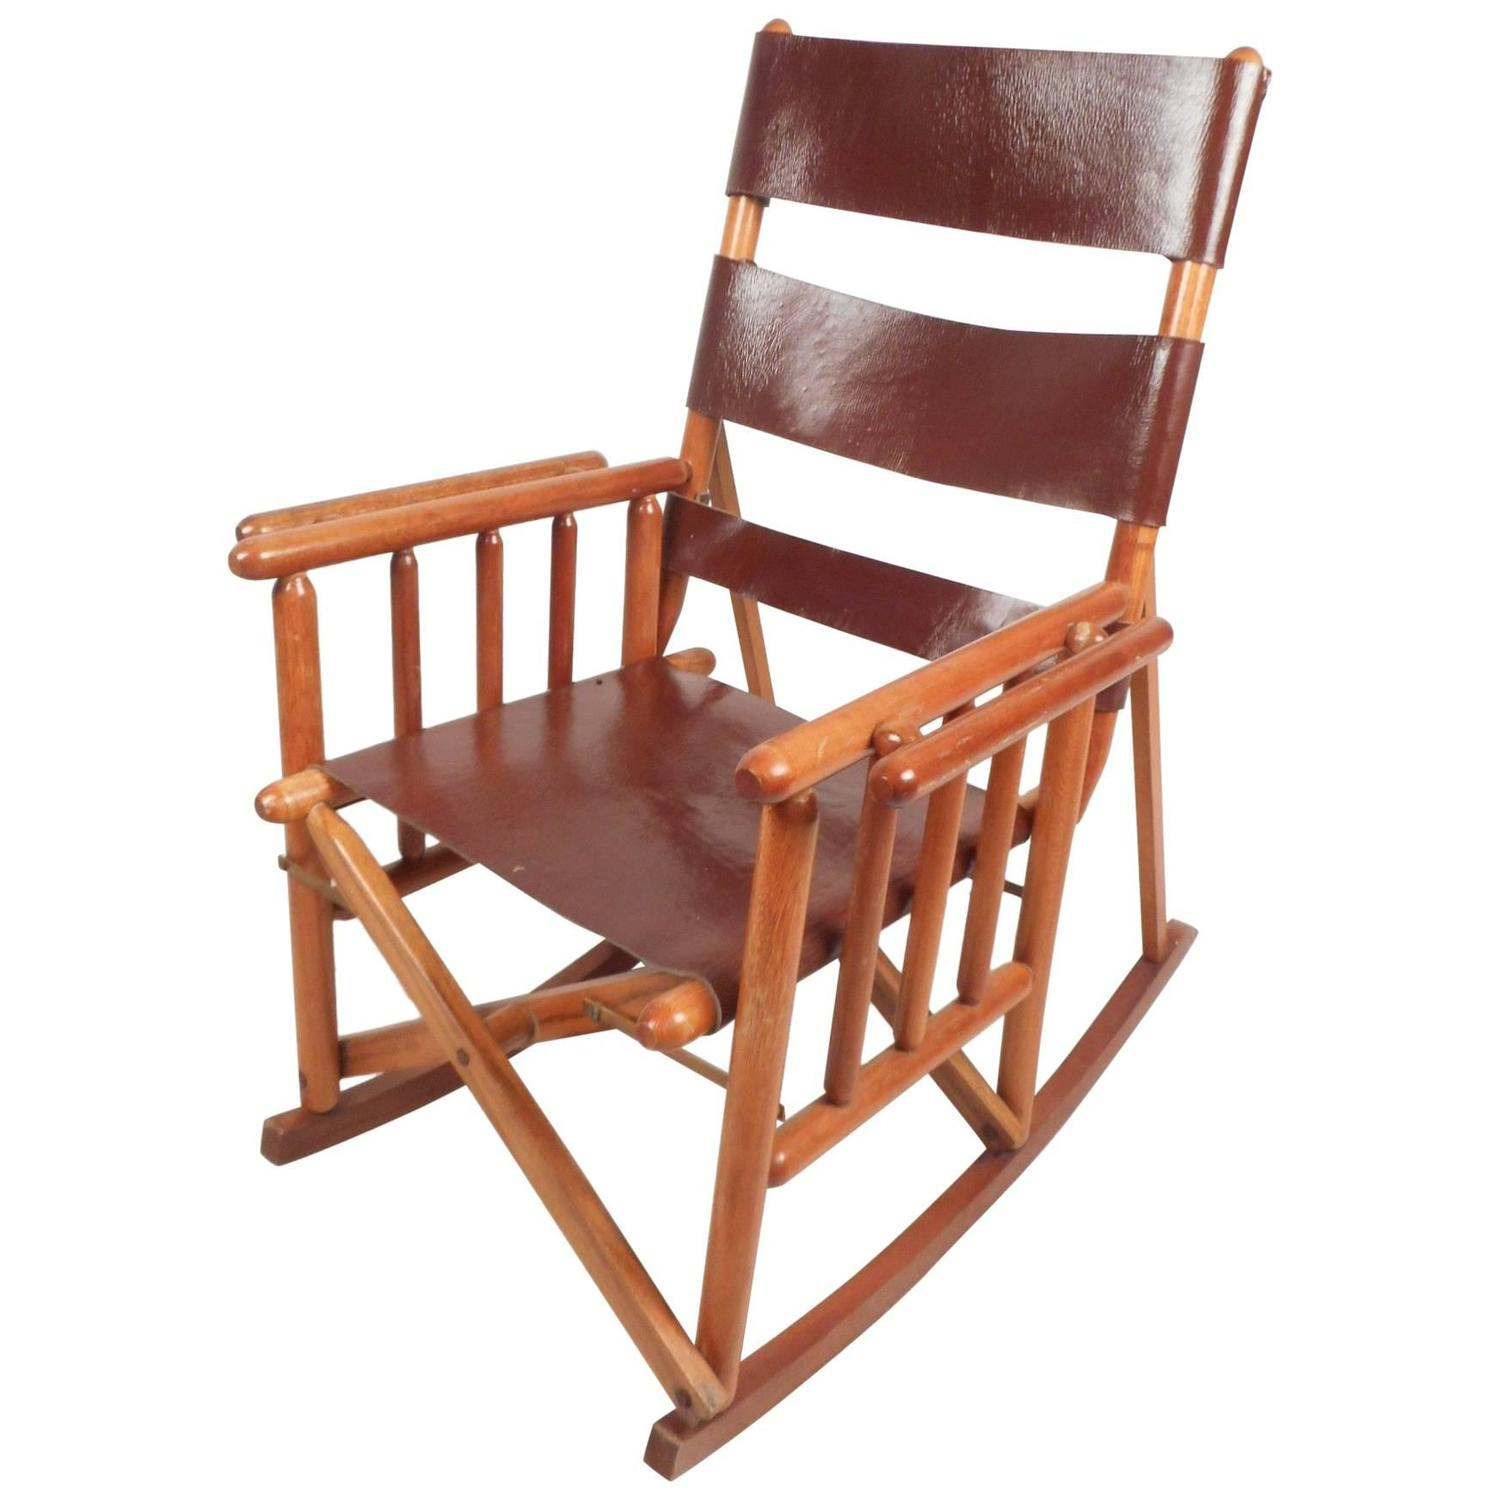 Mid Century Modern Rocking Chairs 295 For Sale at 1stdibs